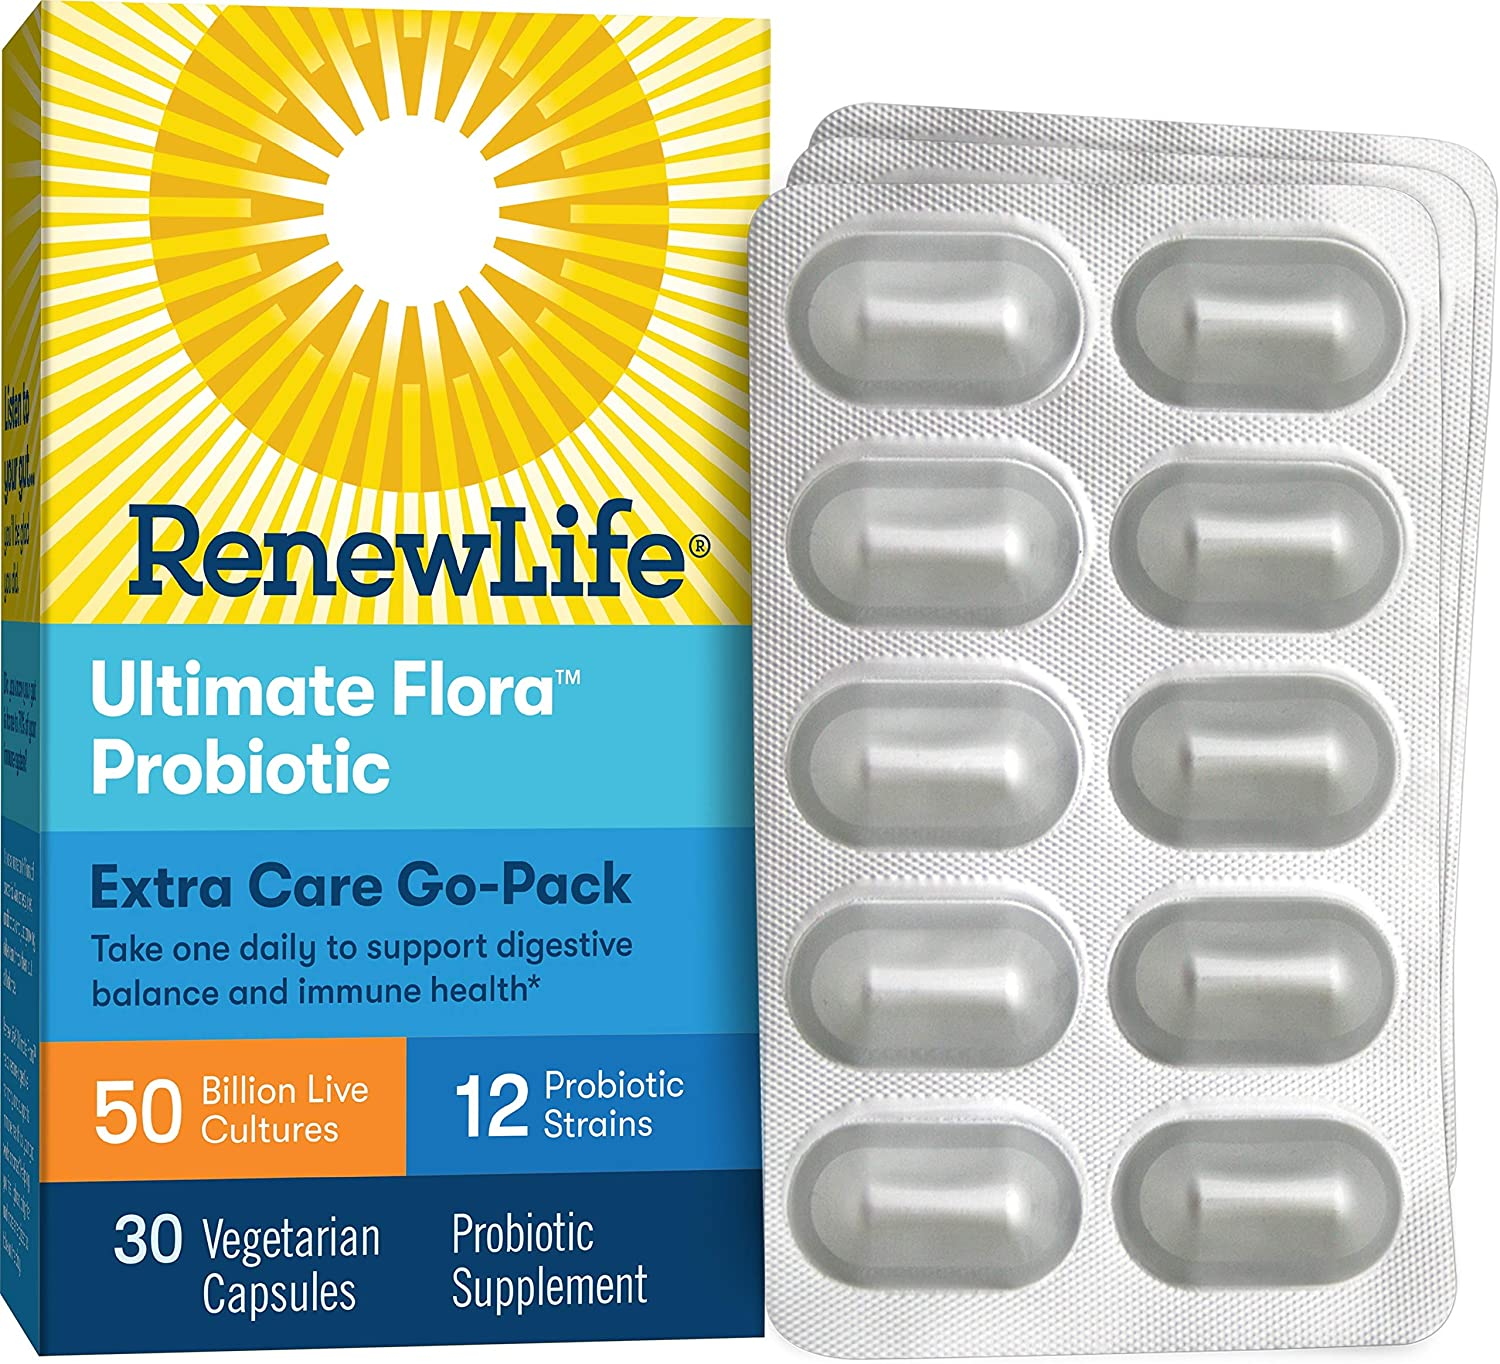 Renew Life Adult Probiotic - Ultimate Flora Extra Care Go-Pack Probiotic Supplement - Gluten, Dairy & Soy Free - 50 Billion CFU - 30 Vegetarian Capsules